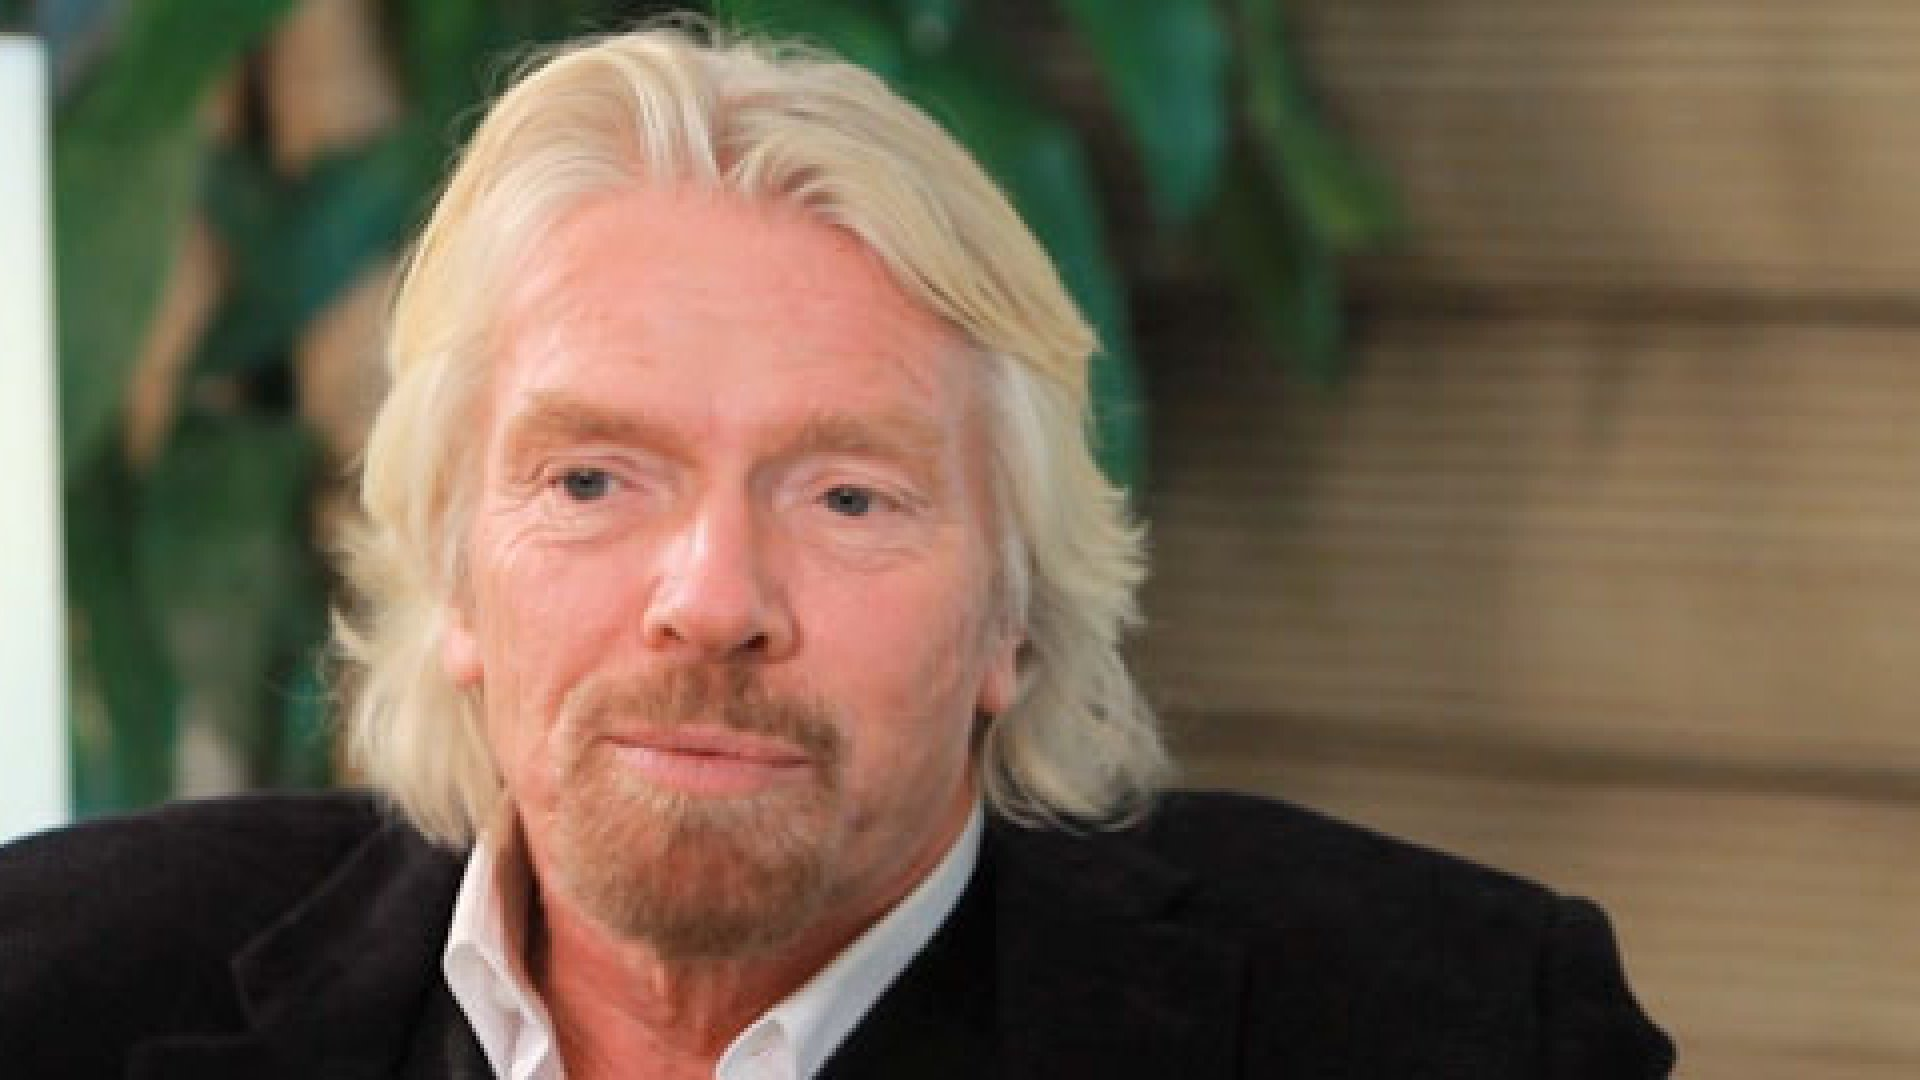 Richard Branson on Getting Started